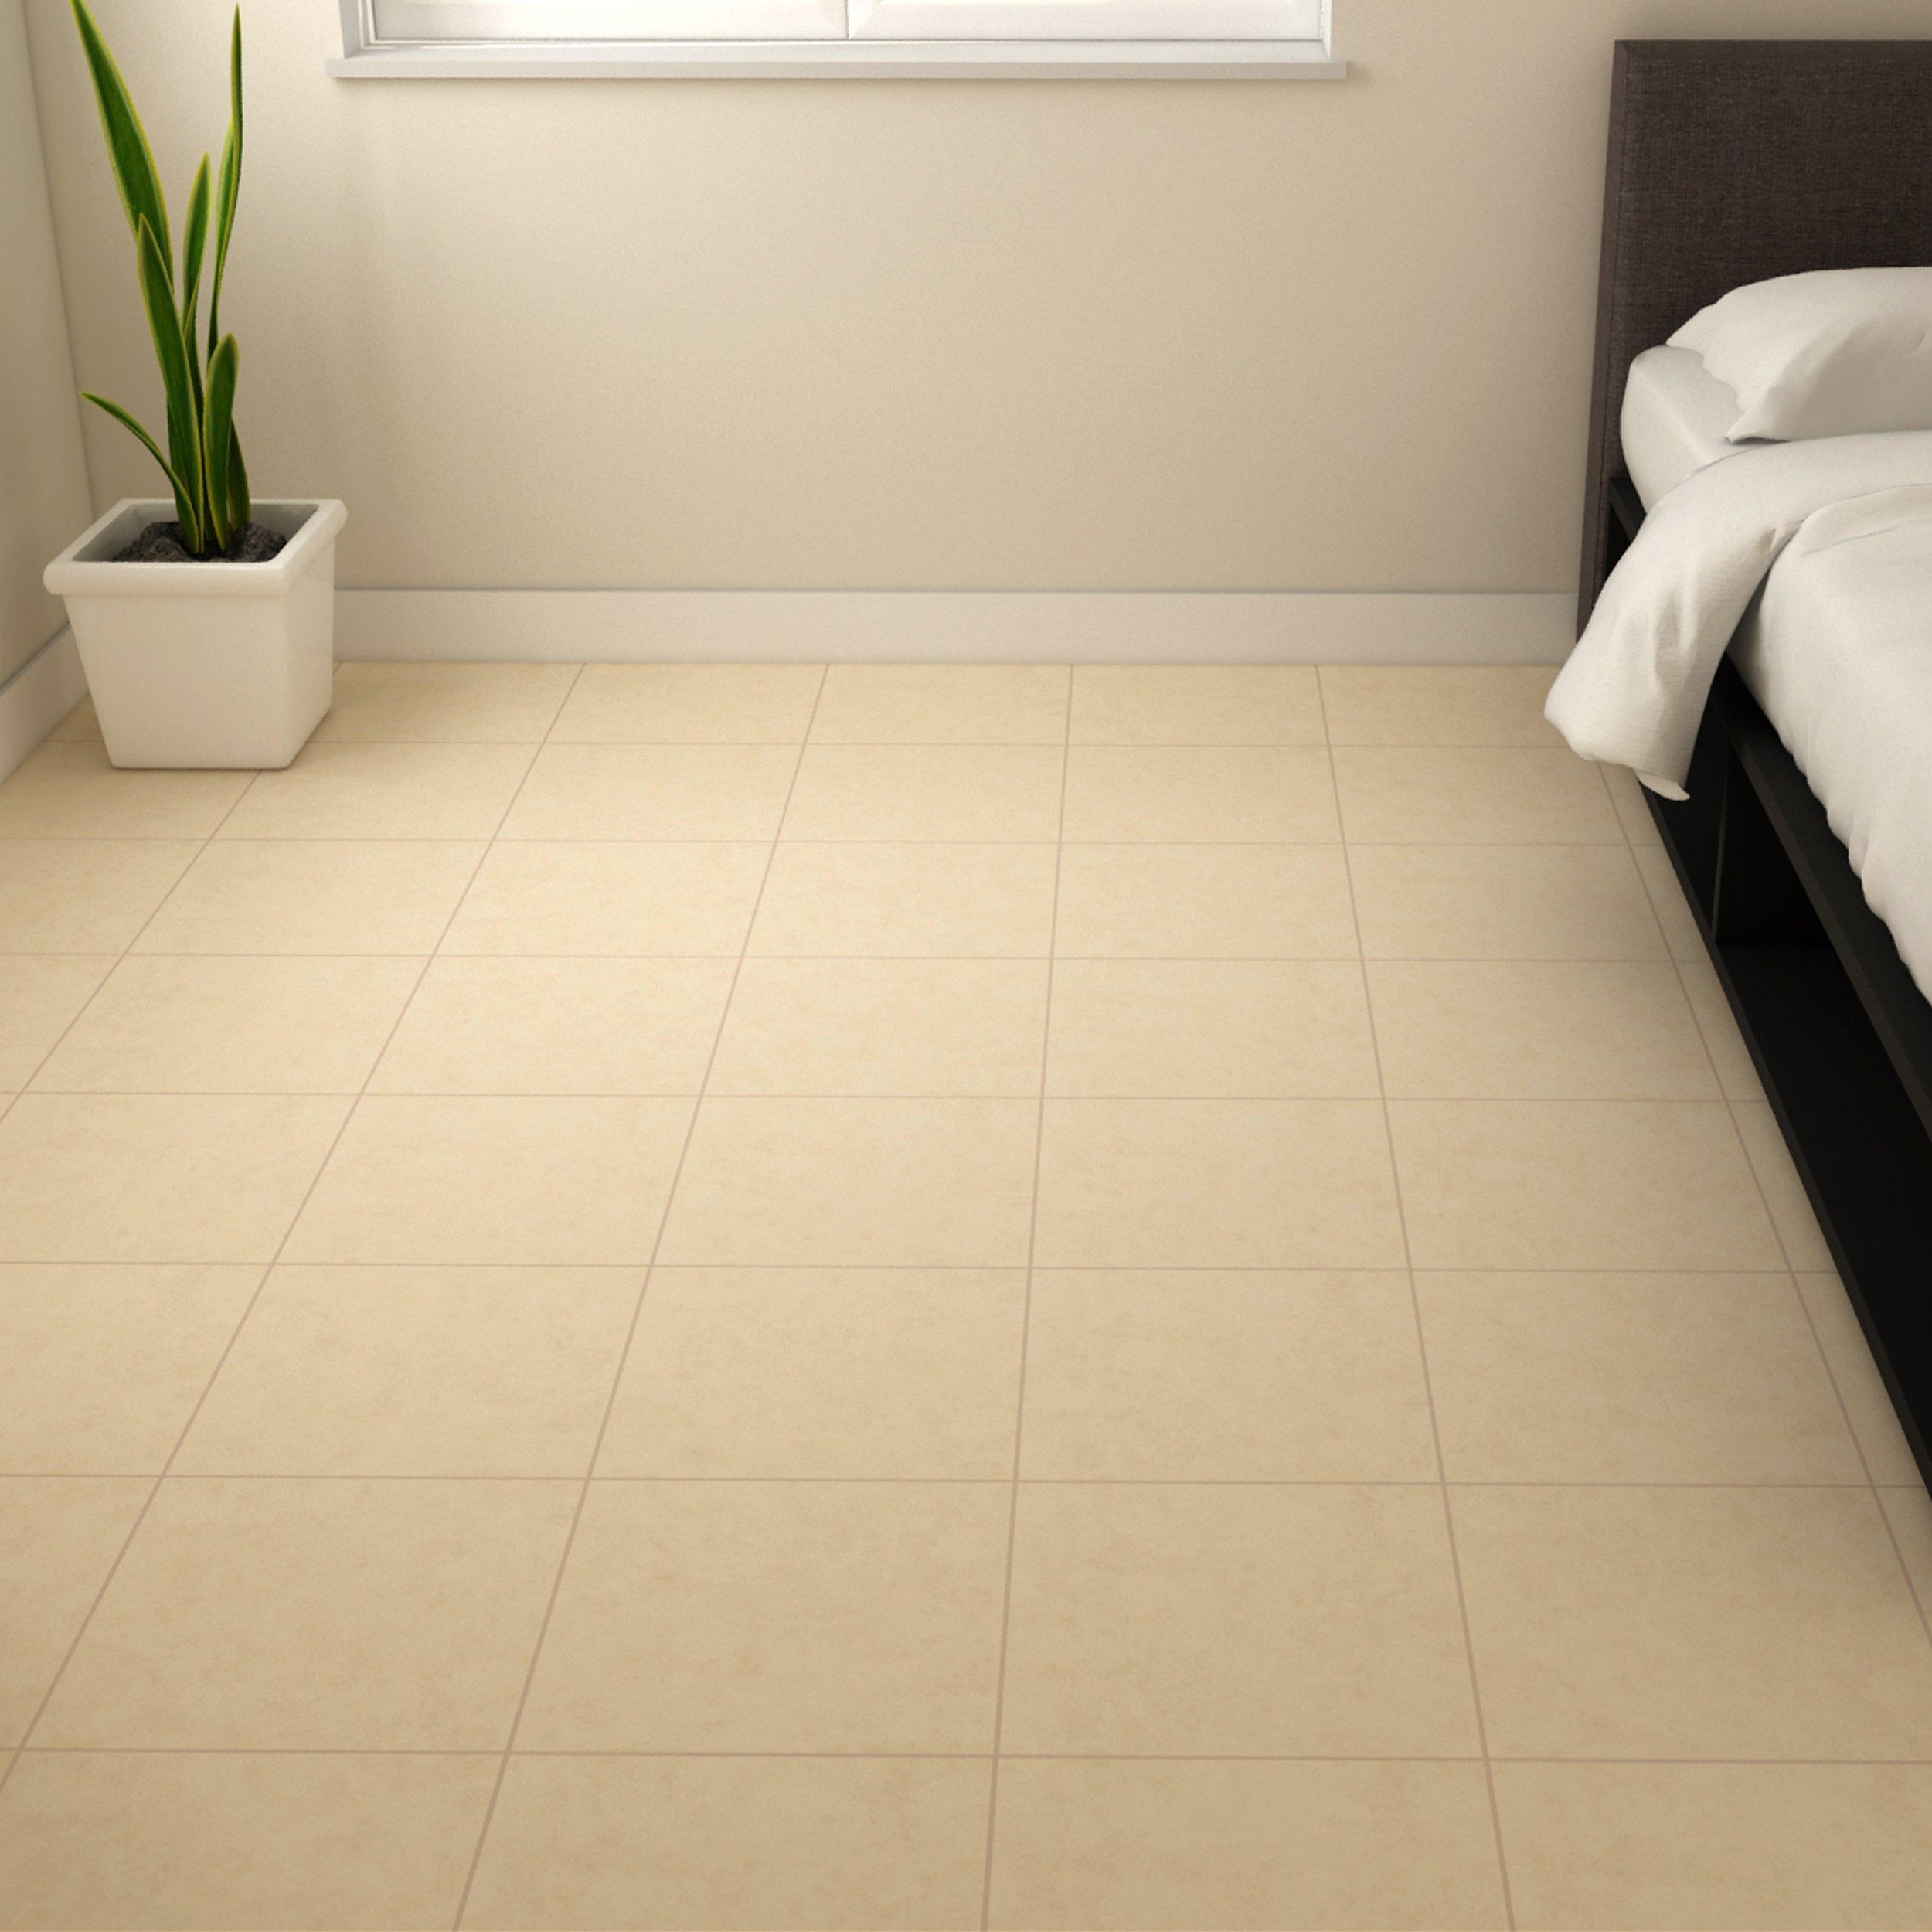 Us ceramic tile products gallery tile flooring design ideas us ceramic tile products images tile flooring design ideas glazed ceramic floor tiles image collections tile doublecrazyfo Gallery